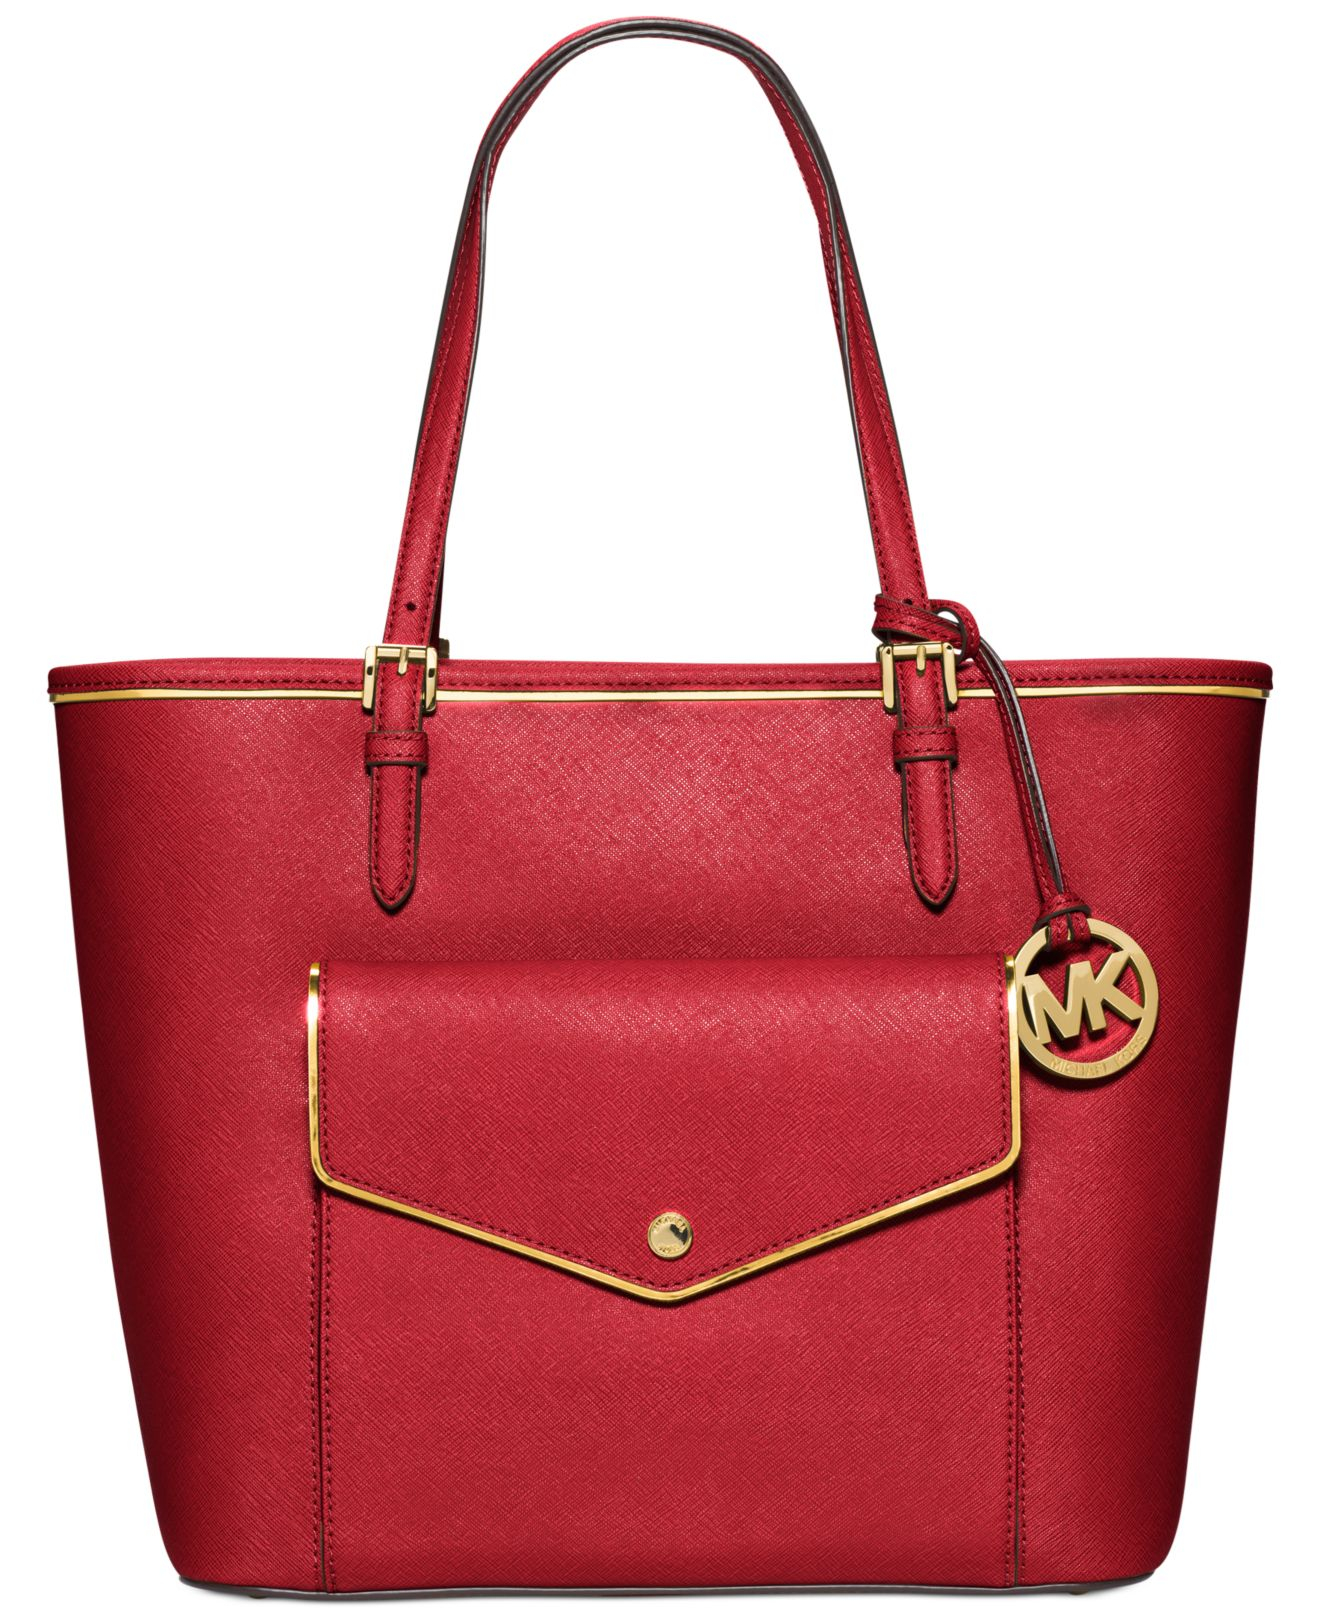 Shop MICHAEL Michael Kors Designer Handbags & Accessories at Macy's! FREE SHIPPING with $99 purchase! Shop for Michael Kors bags, shoes, jewelry & more.